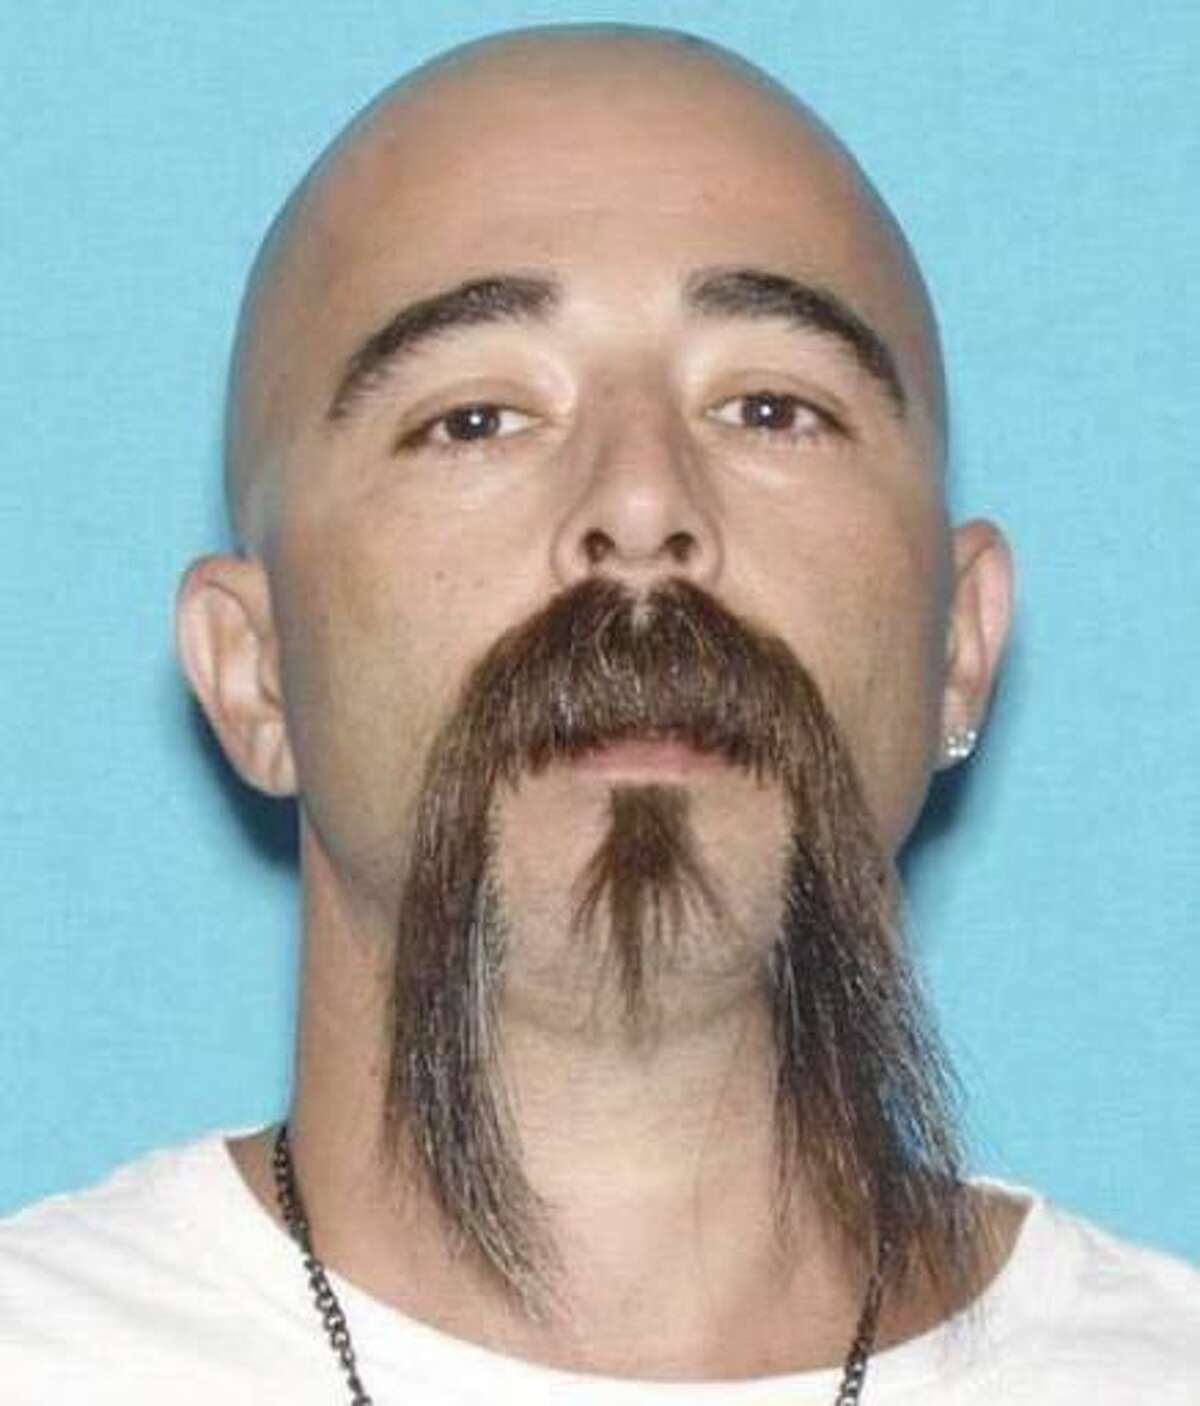 David Machado is seen in an undated photo provided by the Stanislaus County Sheriff's Department. Marchado, a suspect in the fatal shooting of a Stanislaus County Sheriff's deputy outside the city of Hughson, Calif. Sunday, Nov. 13, 2016, was arrested in Tulare County, according to the according to the Stanislaus County Sheriff's Department. (Stanislaus County Sheriff's Department via AP)